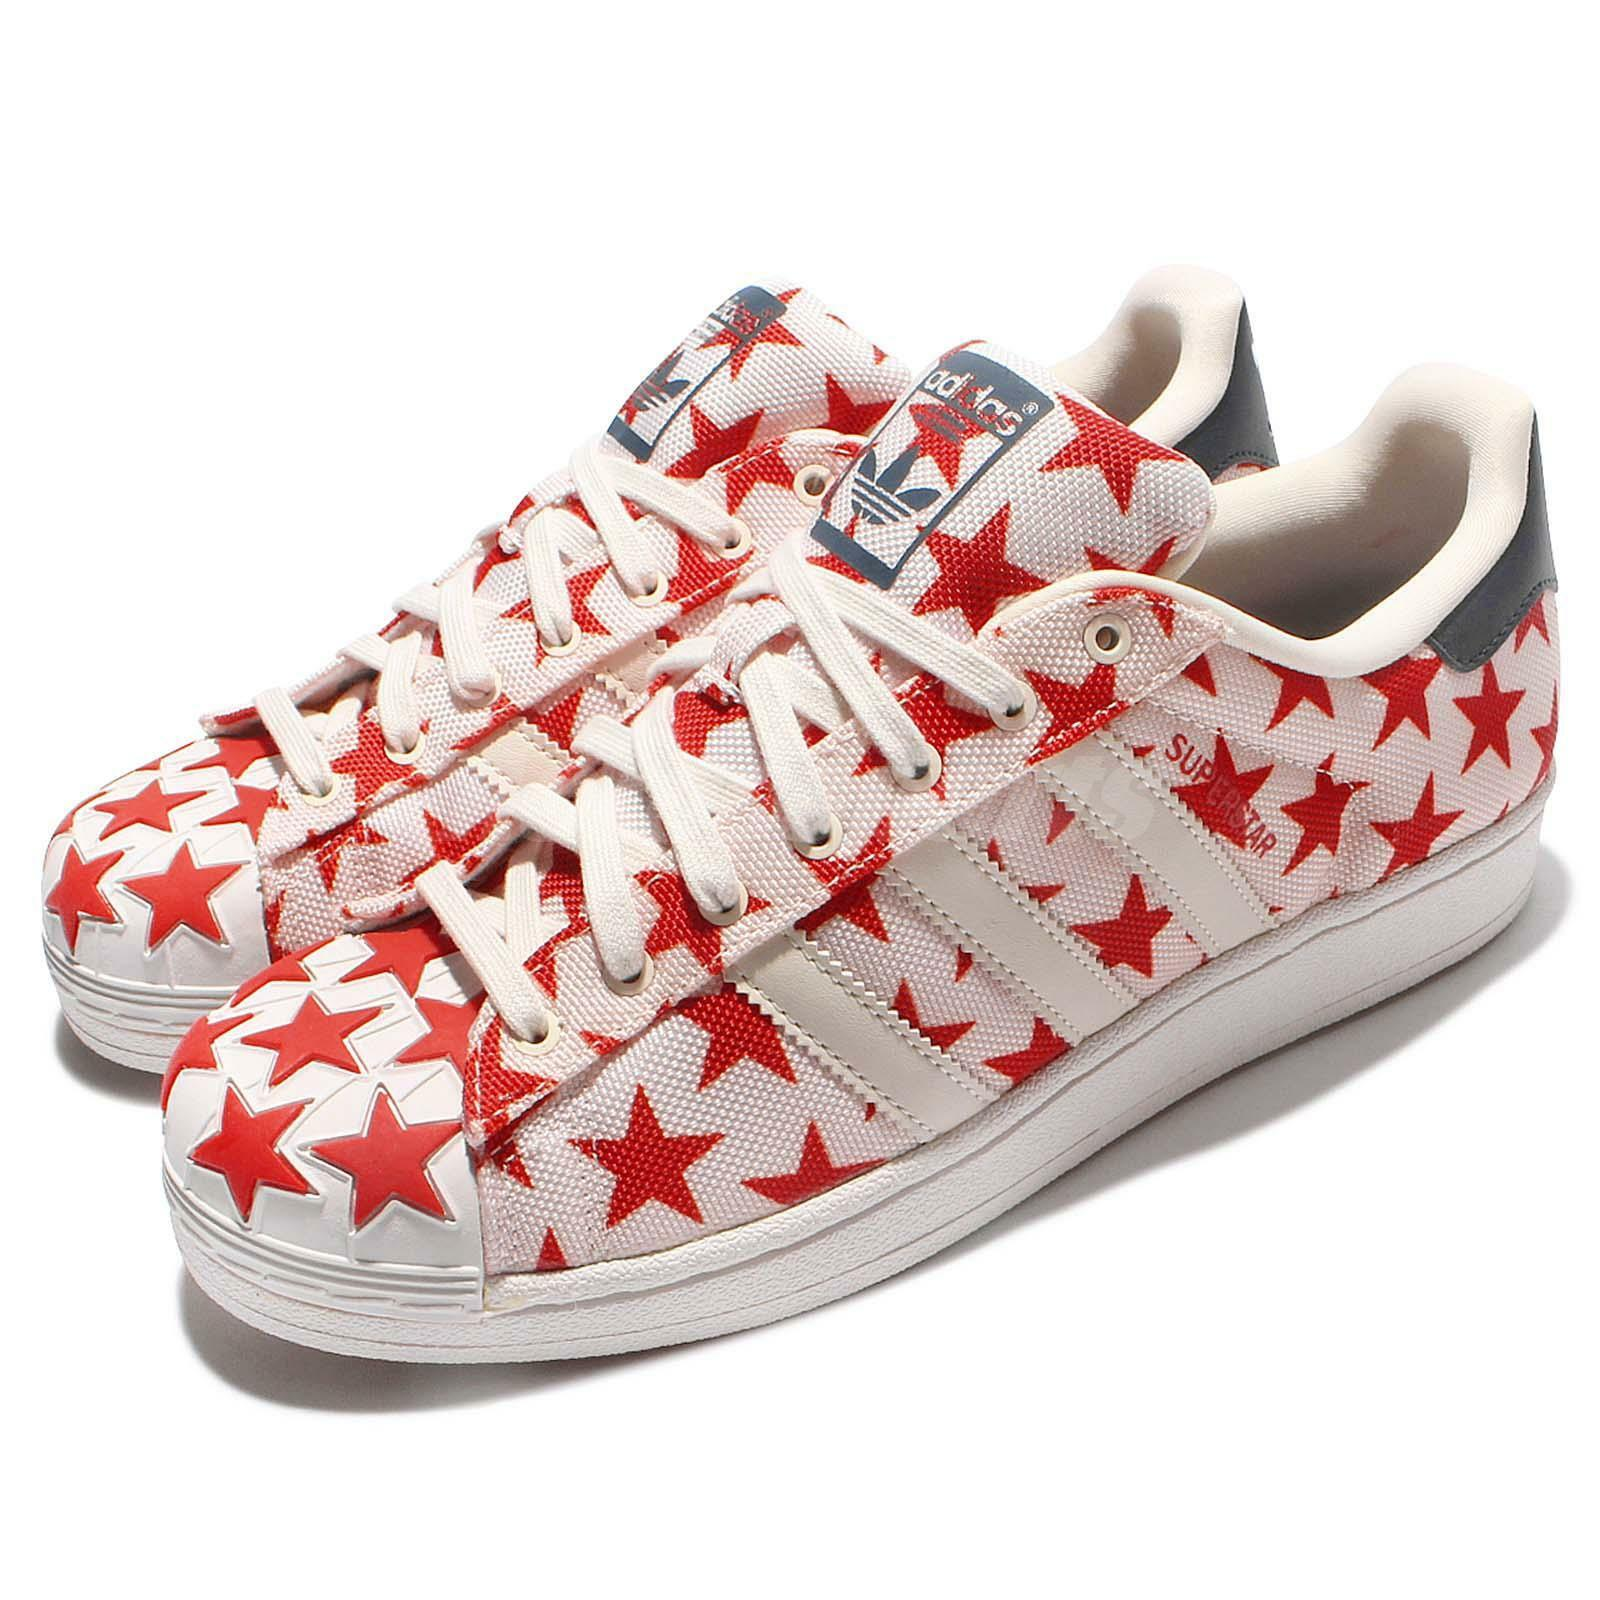 adidas Originals Superstar Shell Toe Pack Blanc Rouge Star Casual